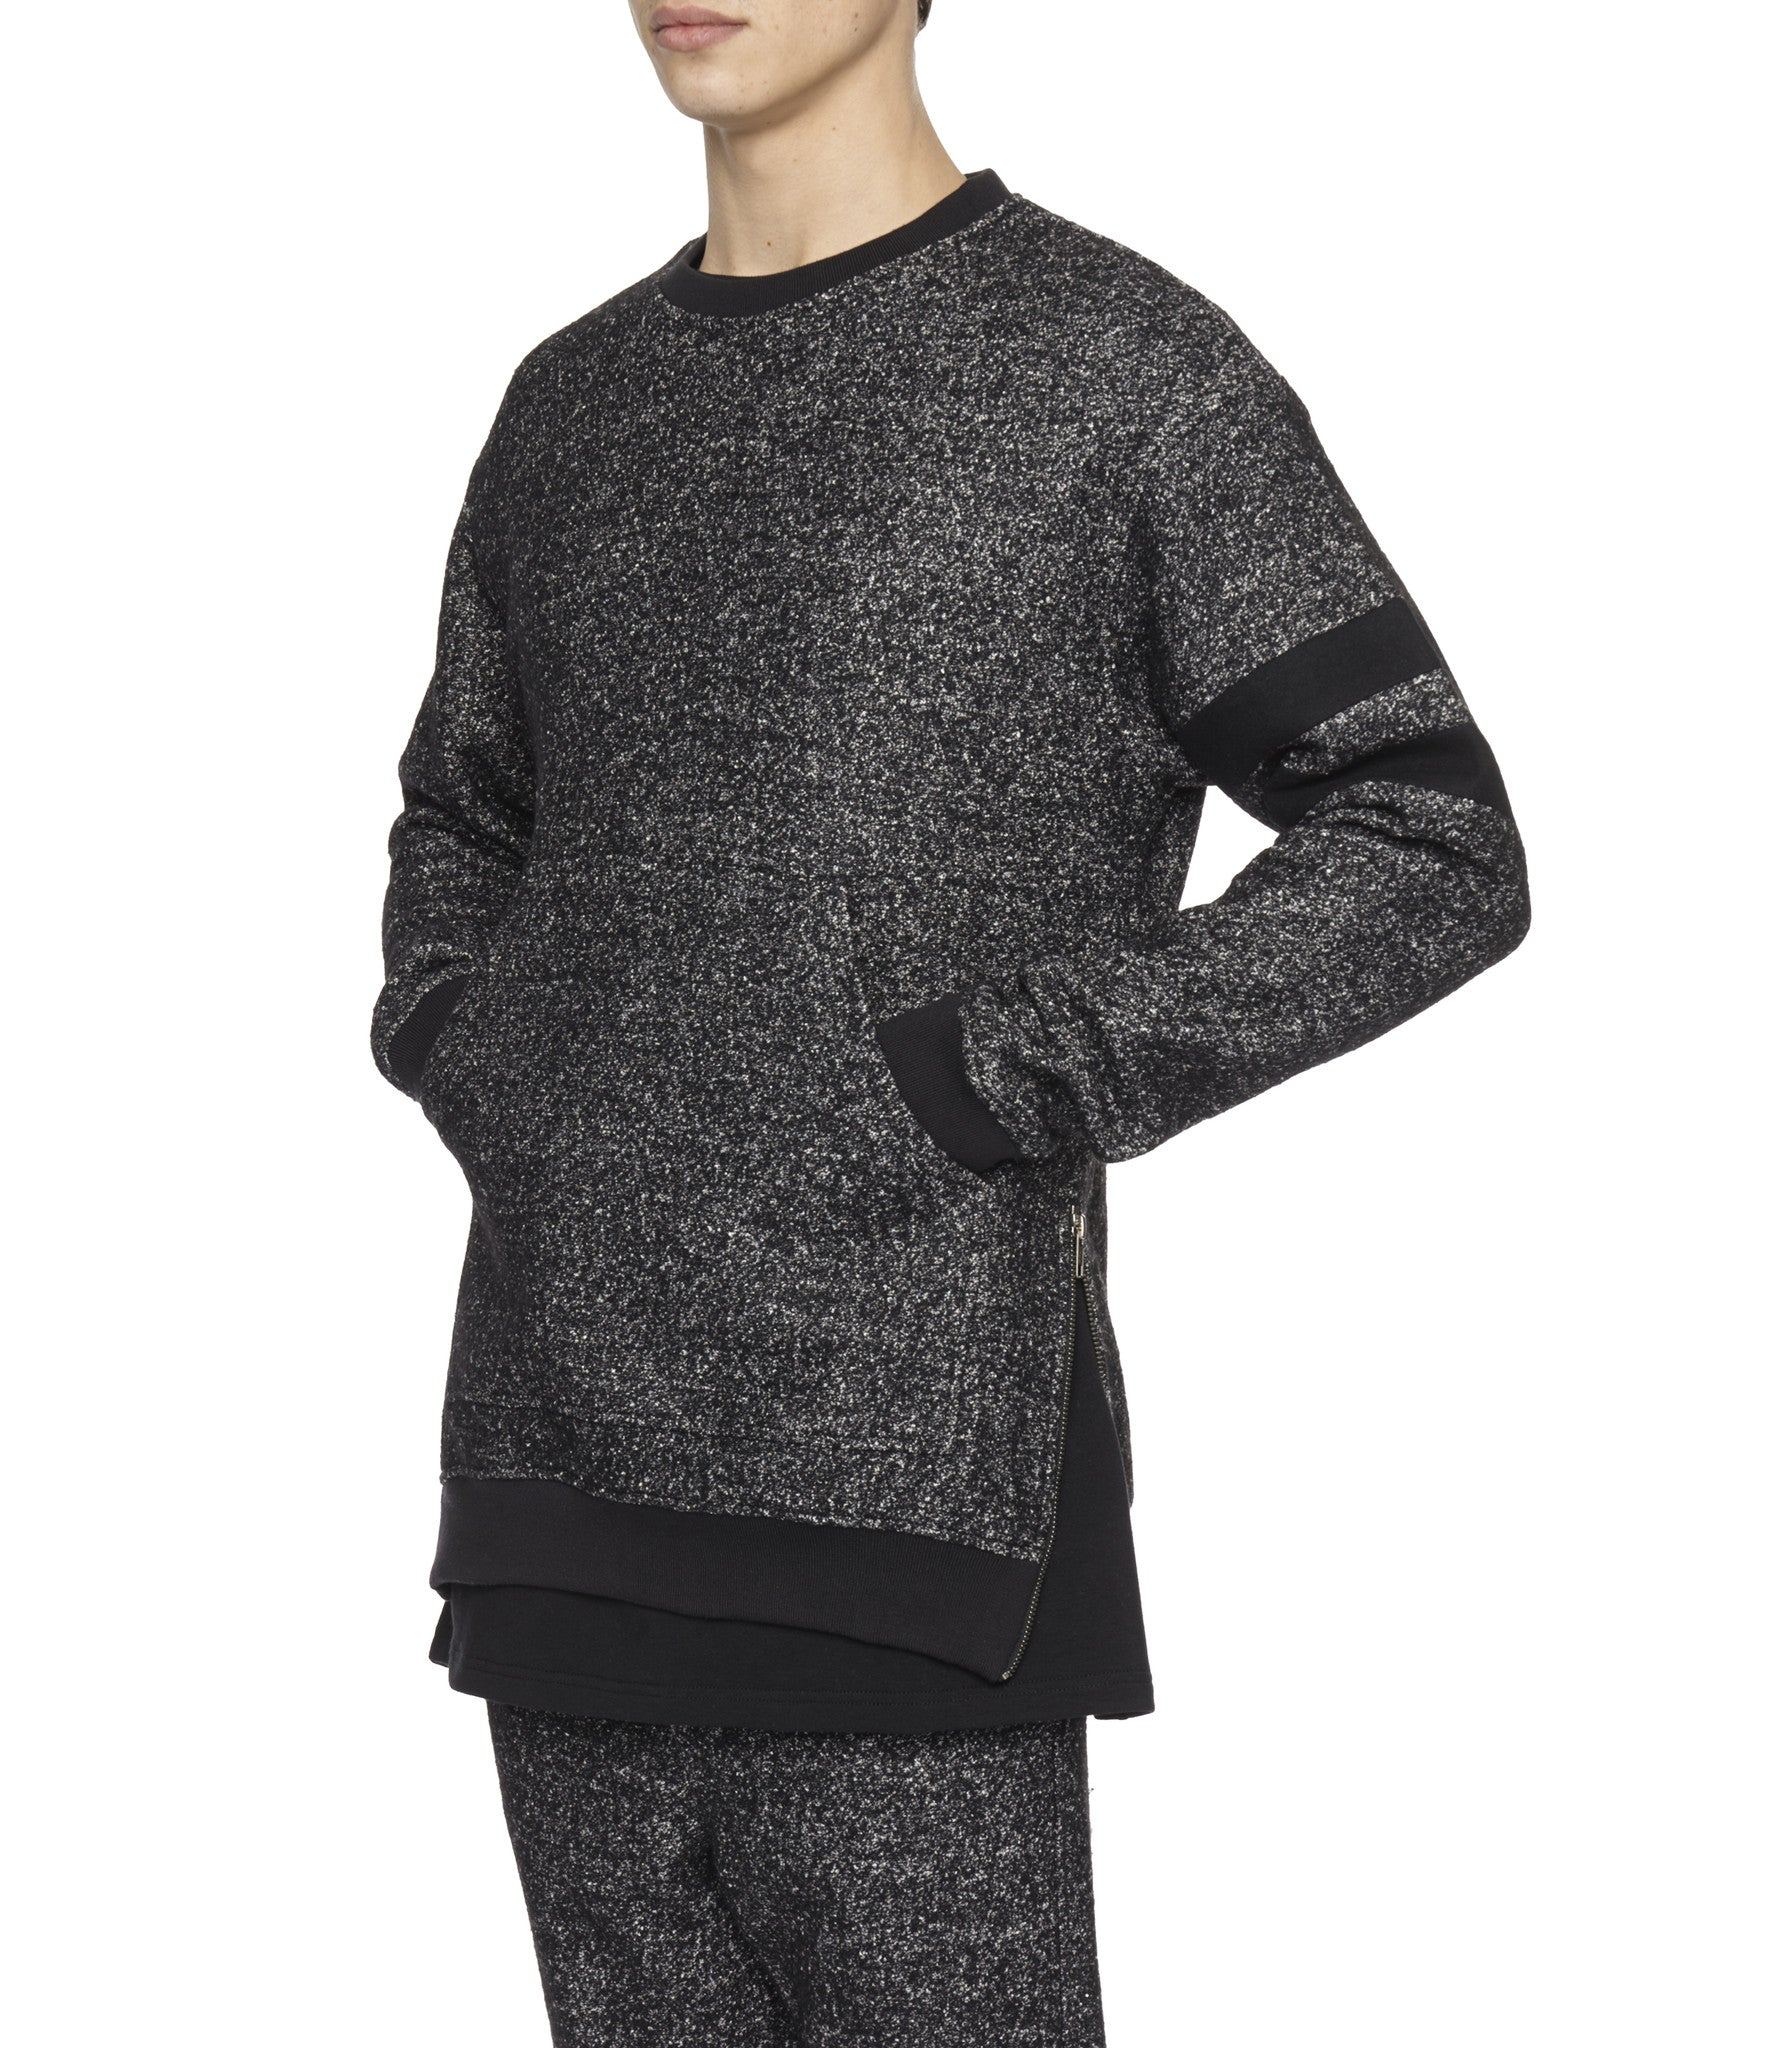 SW301 Oversized Mélange Wool Sweatshirt - Black - underated london - underatedco - 6